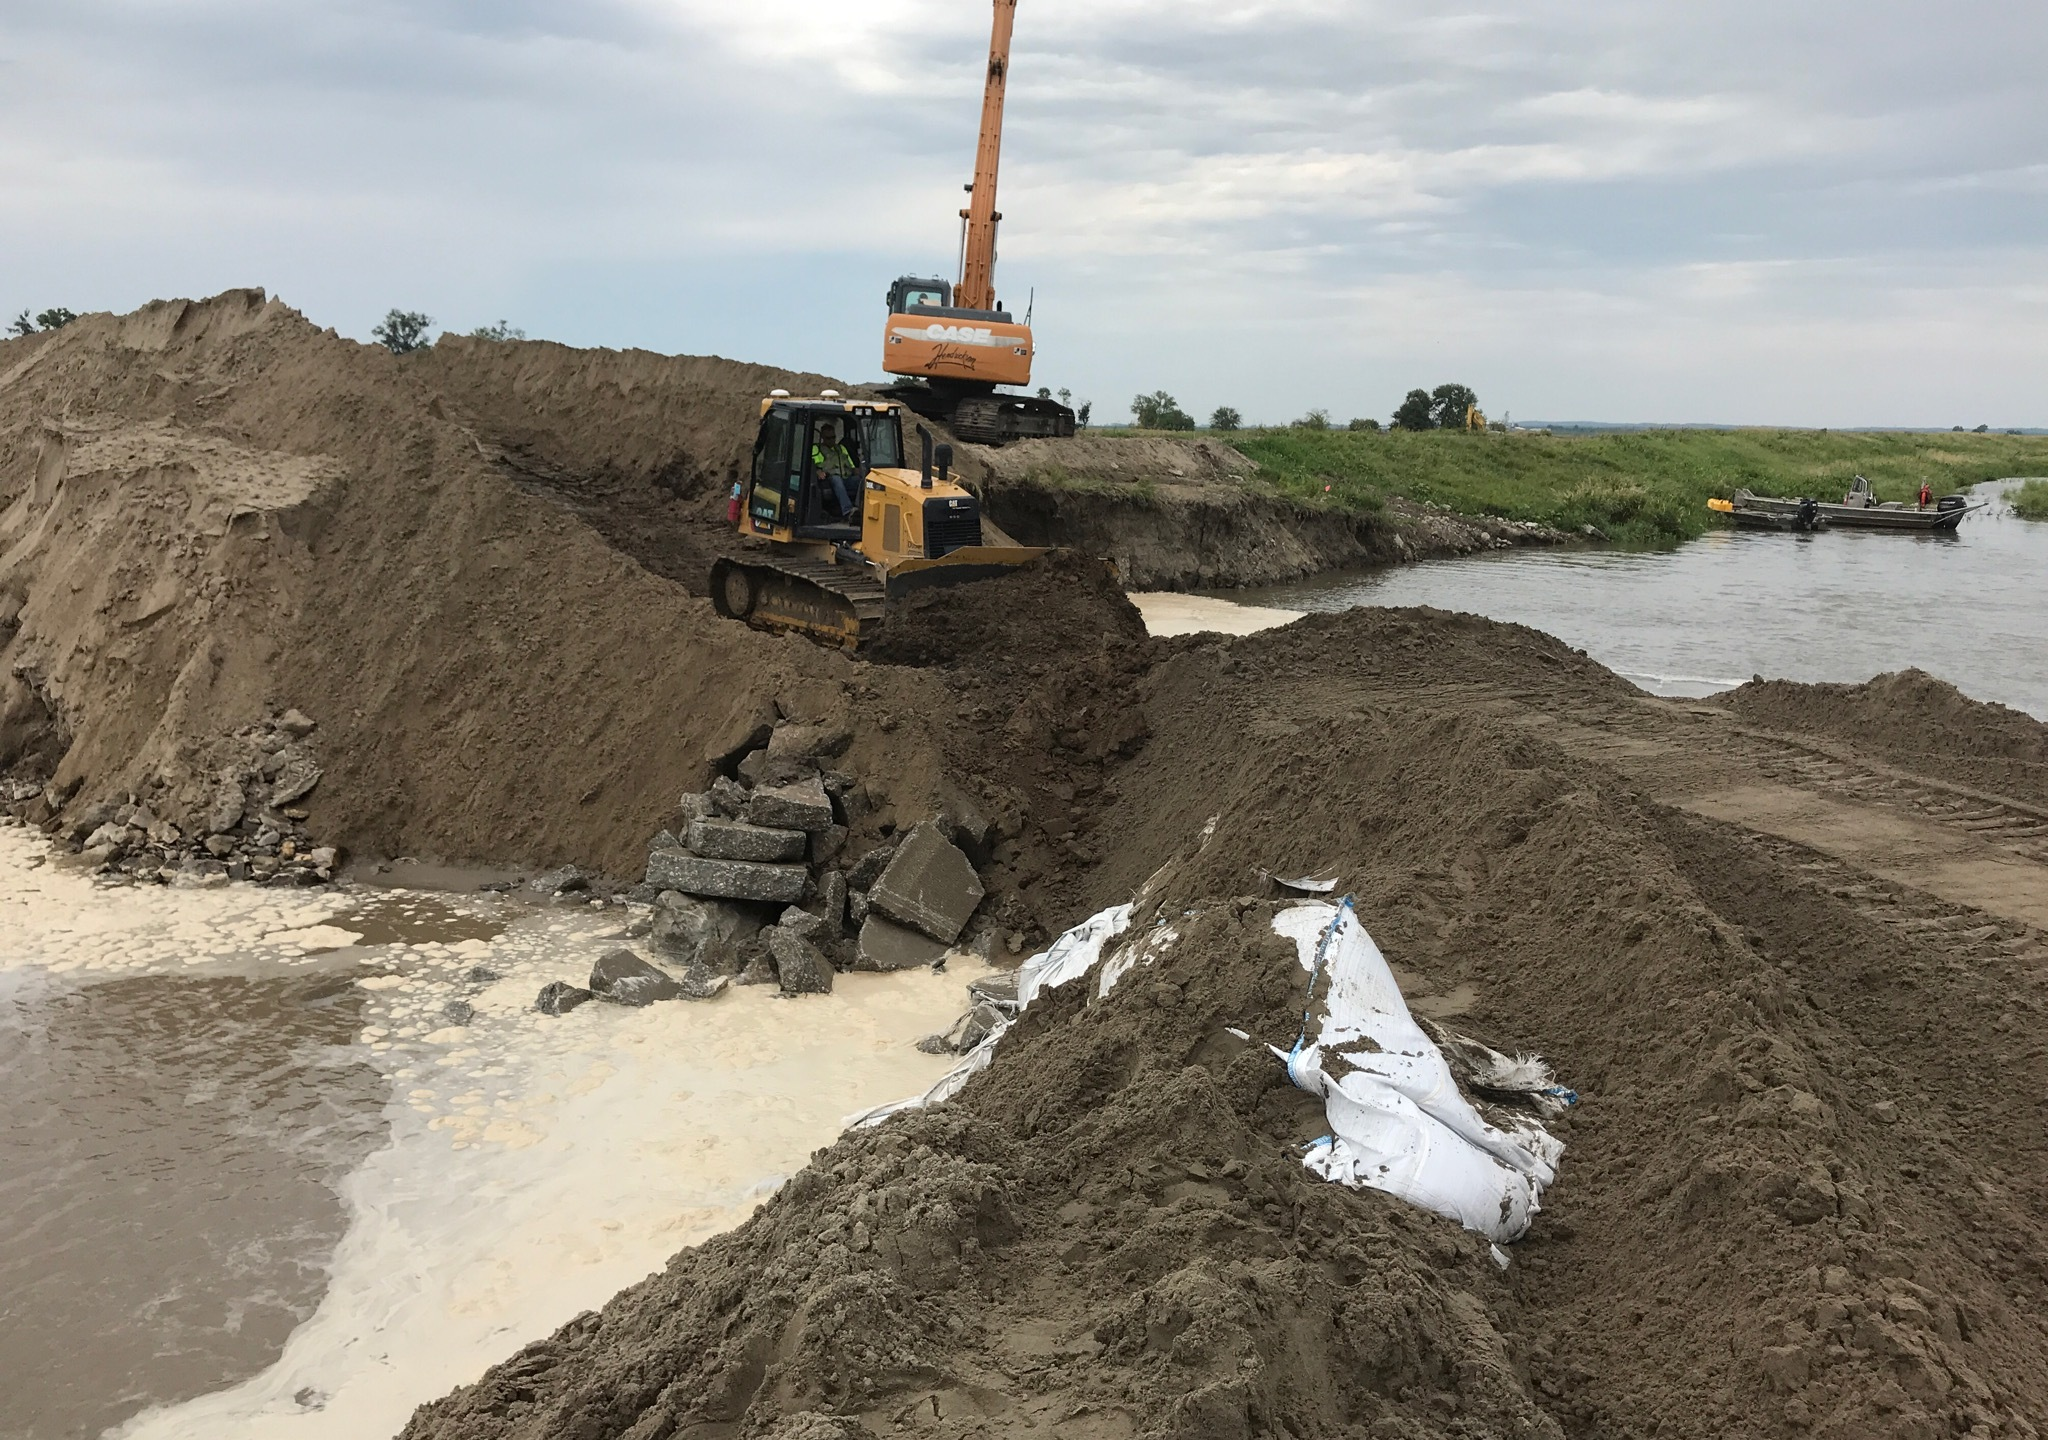 Repair work to close breached Missouri River levee completed